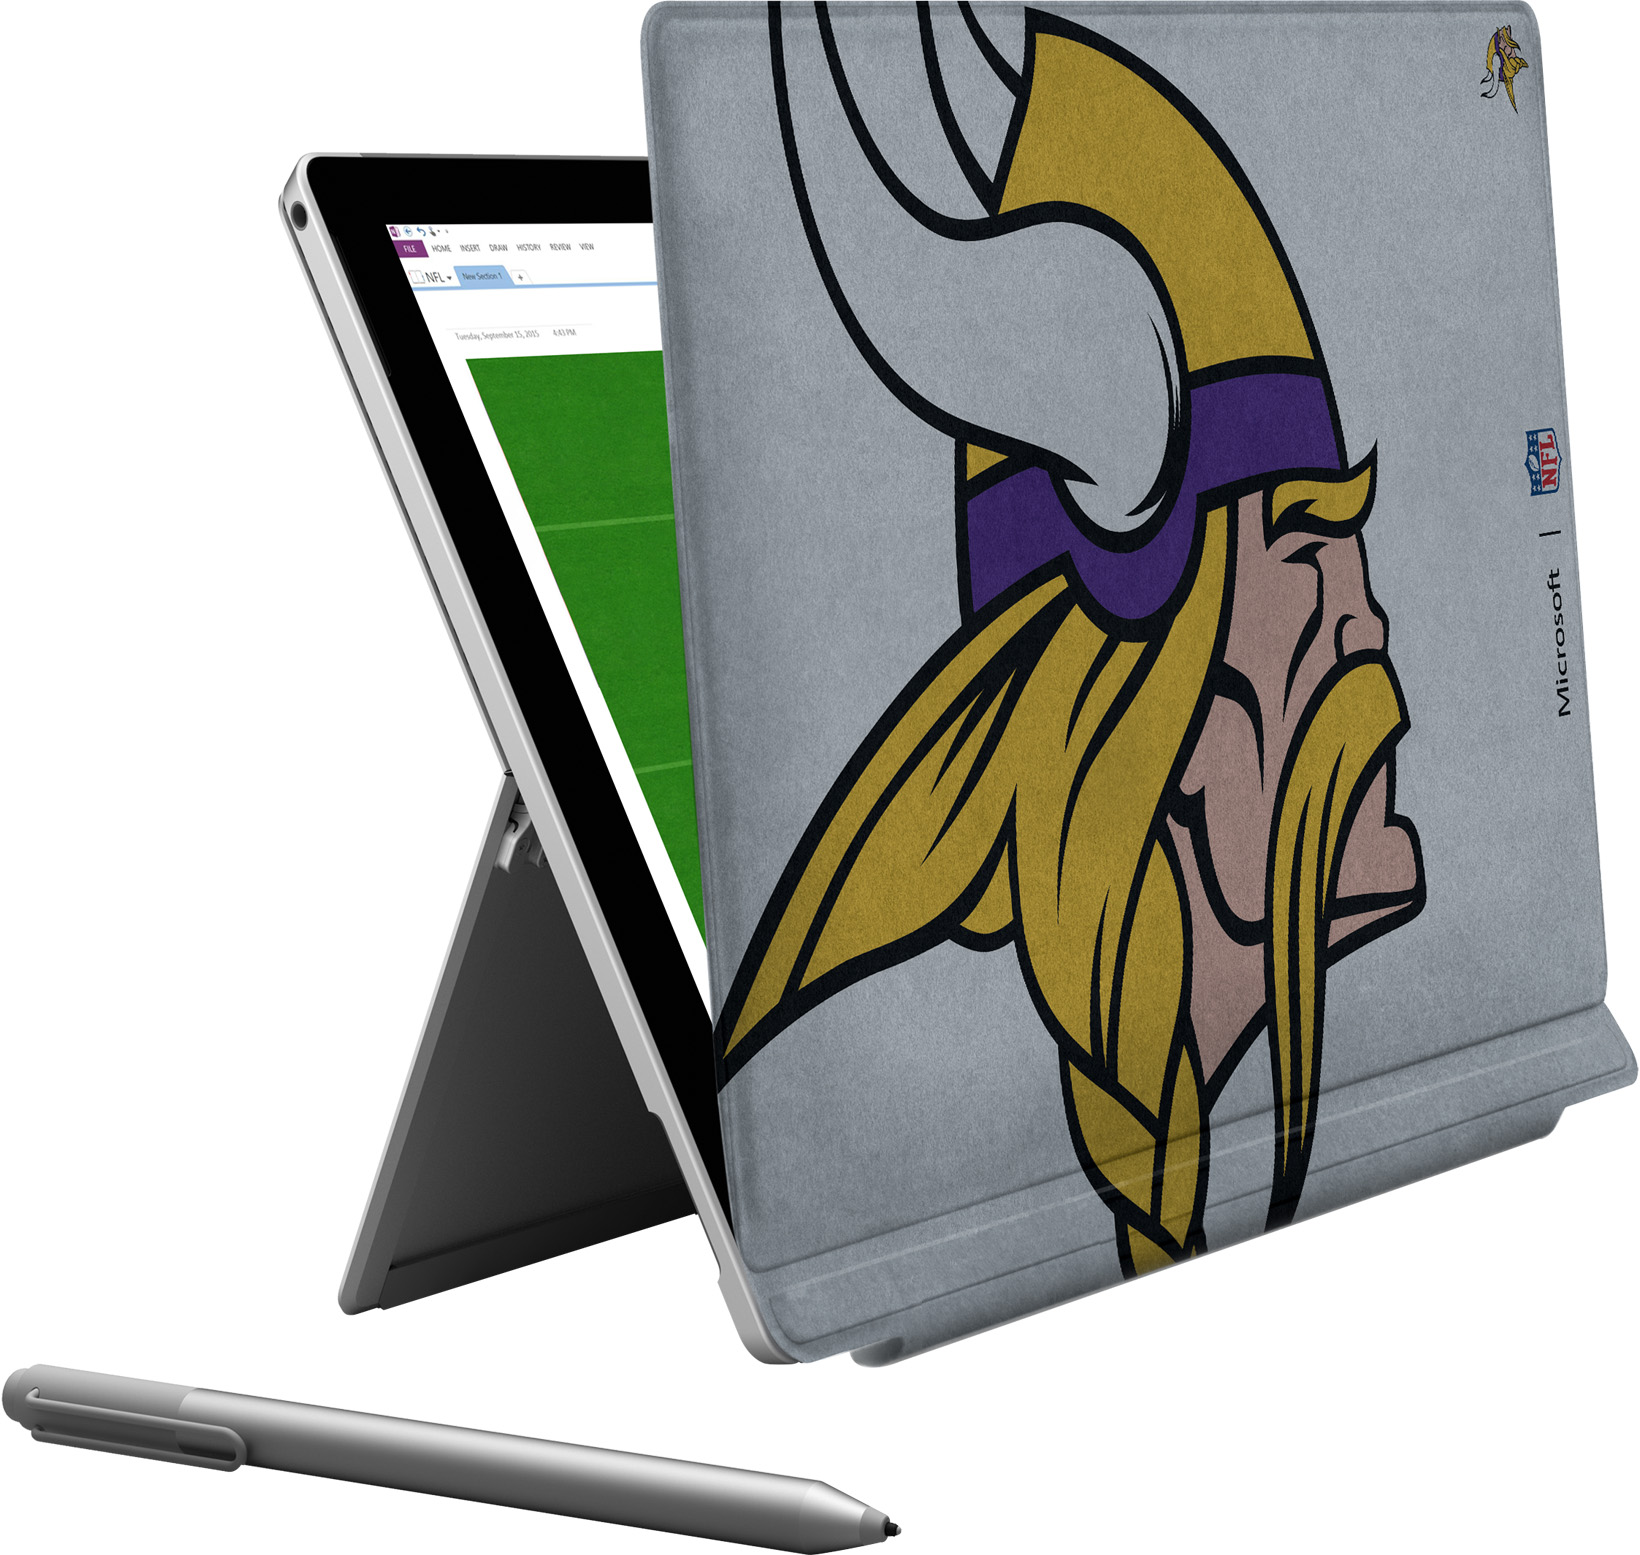 Microsoft Surface Pro 4 Minnesota Vikings Type Cover